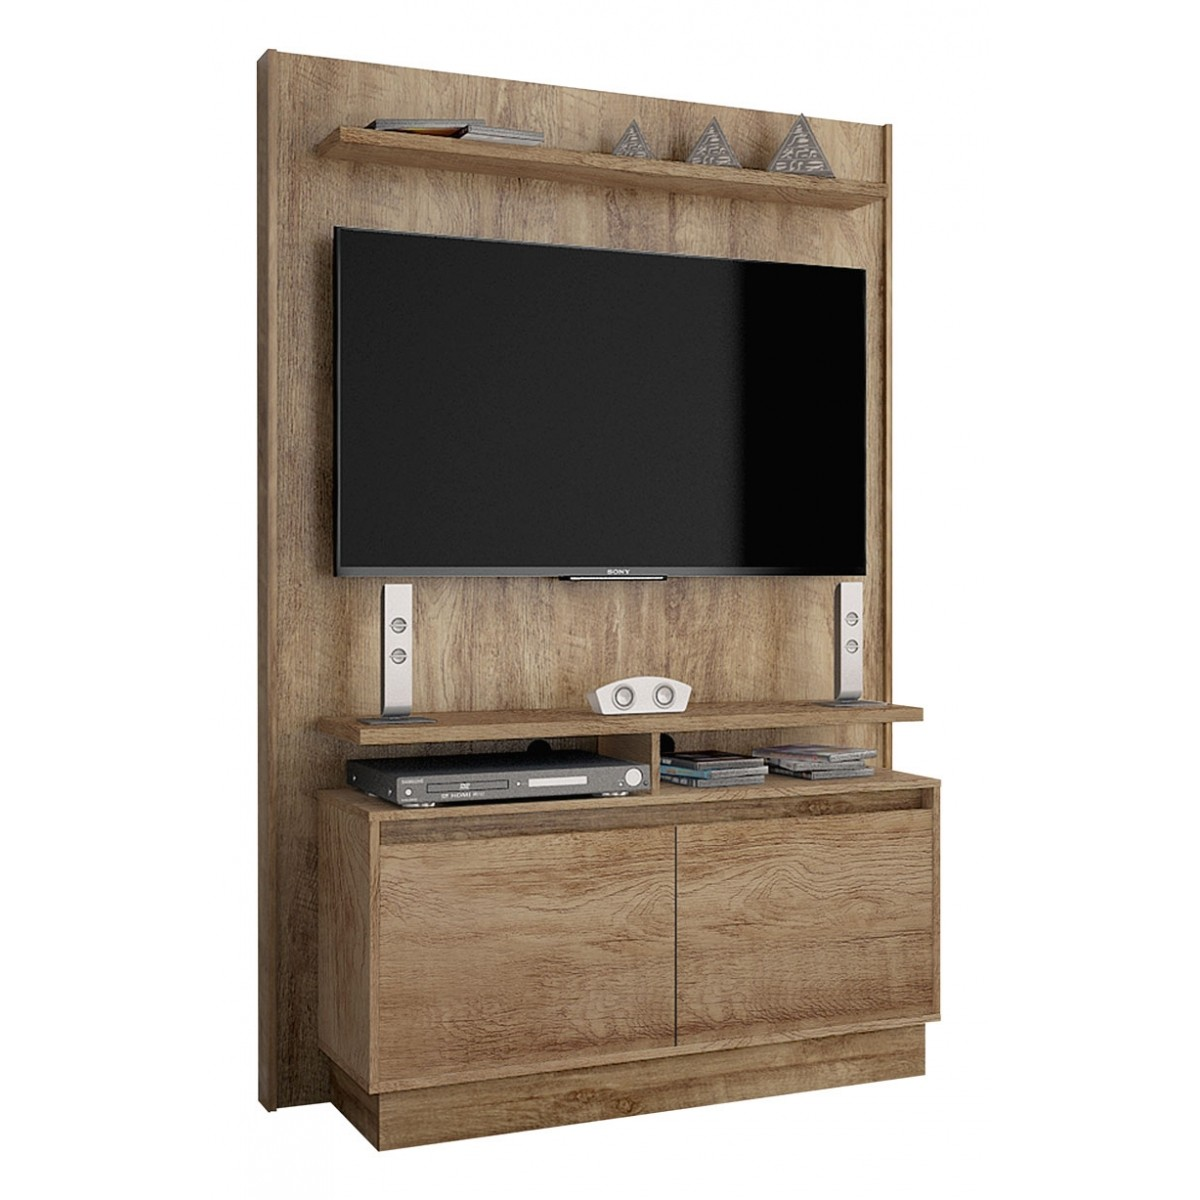 Home Theater Fit Madeira - Imcal